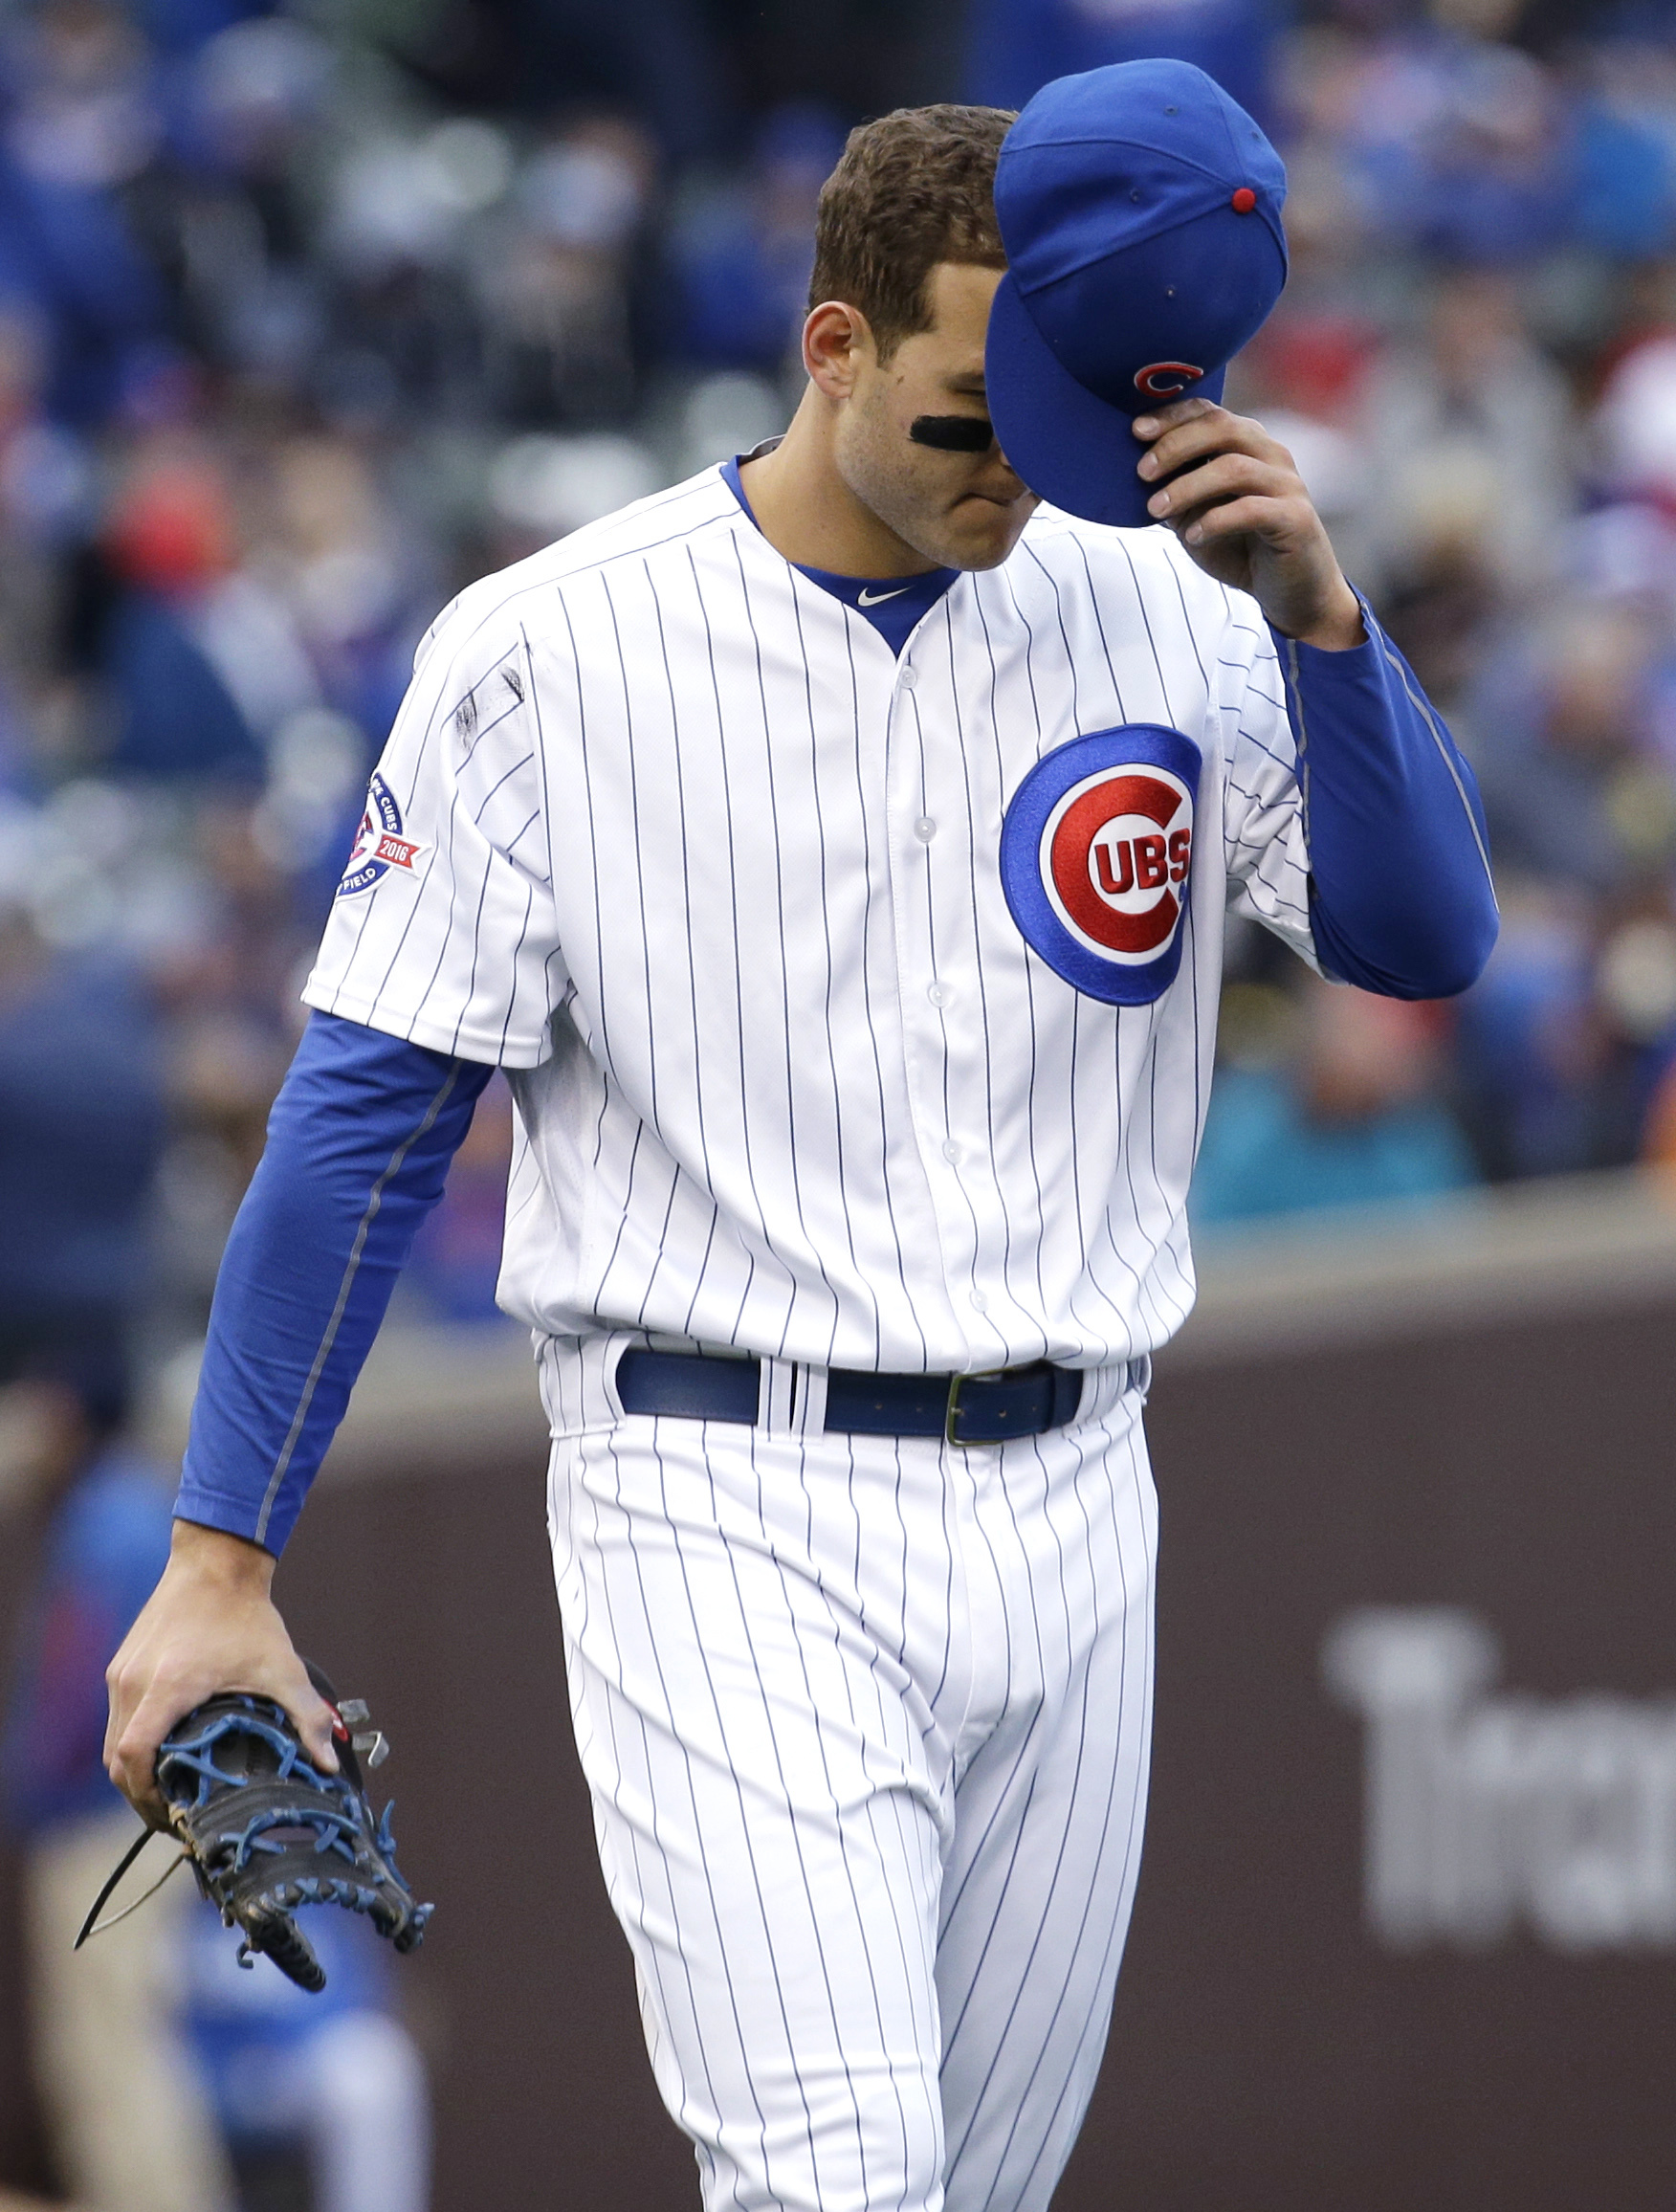 Chicago Cubs' Anthony Rizzo reacts as he walks to first base after striking out swinging during the eighth inning of a baseball game against the Atlanta Braves, Sunday, May 1, 2016, in Chicago. The Braves won 4-3. (AP Photo/Nam Y. Huh)